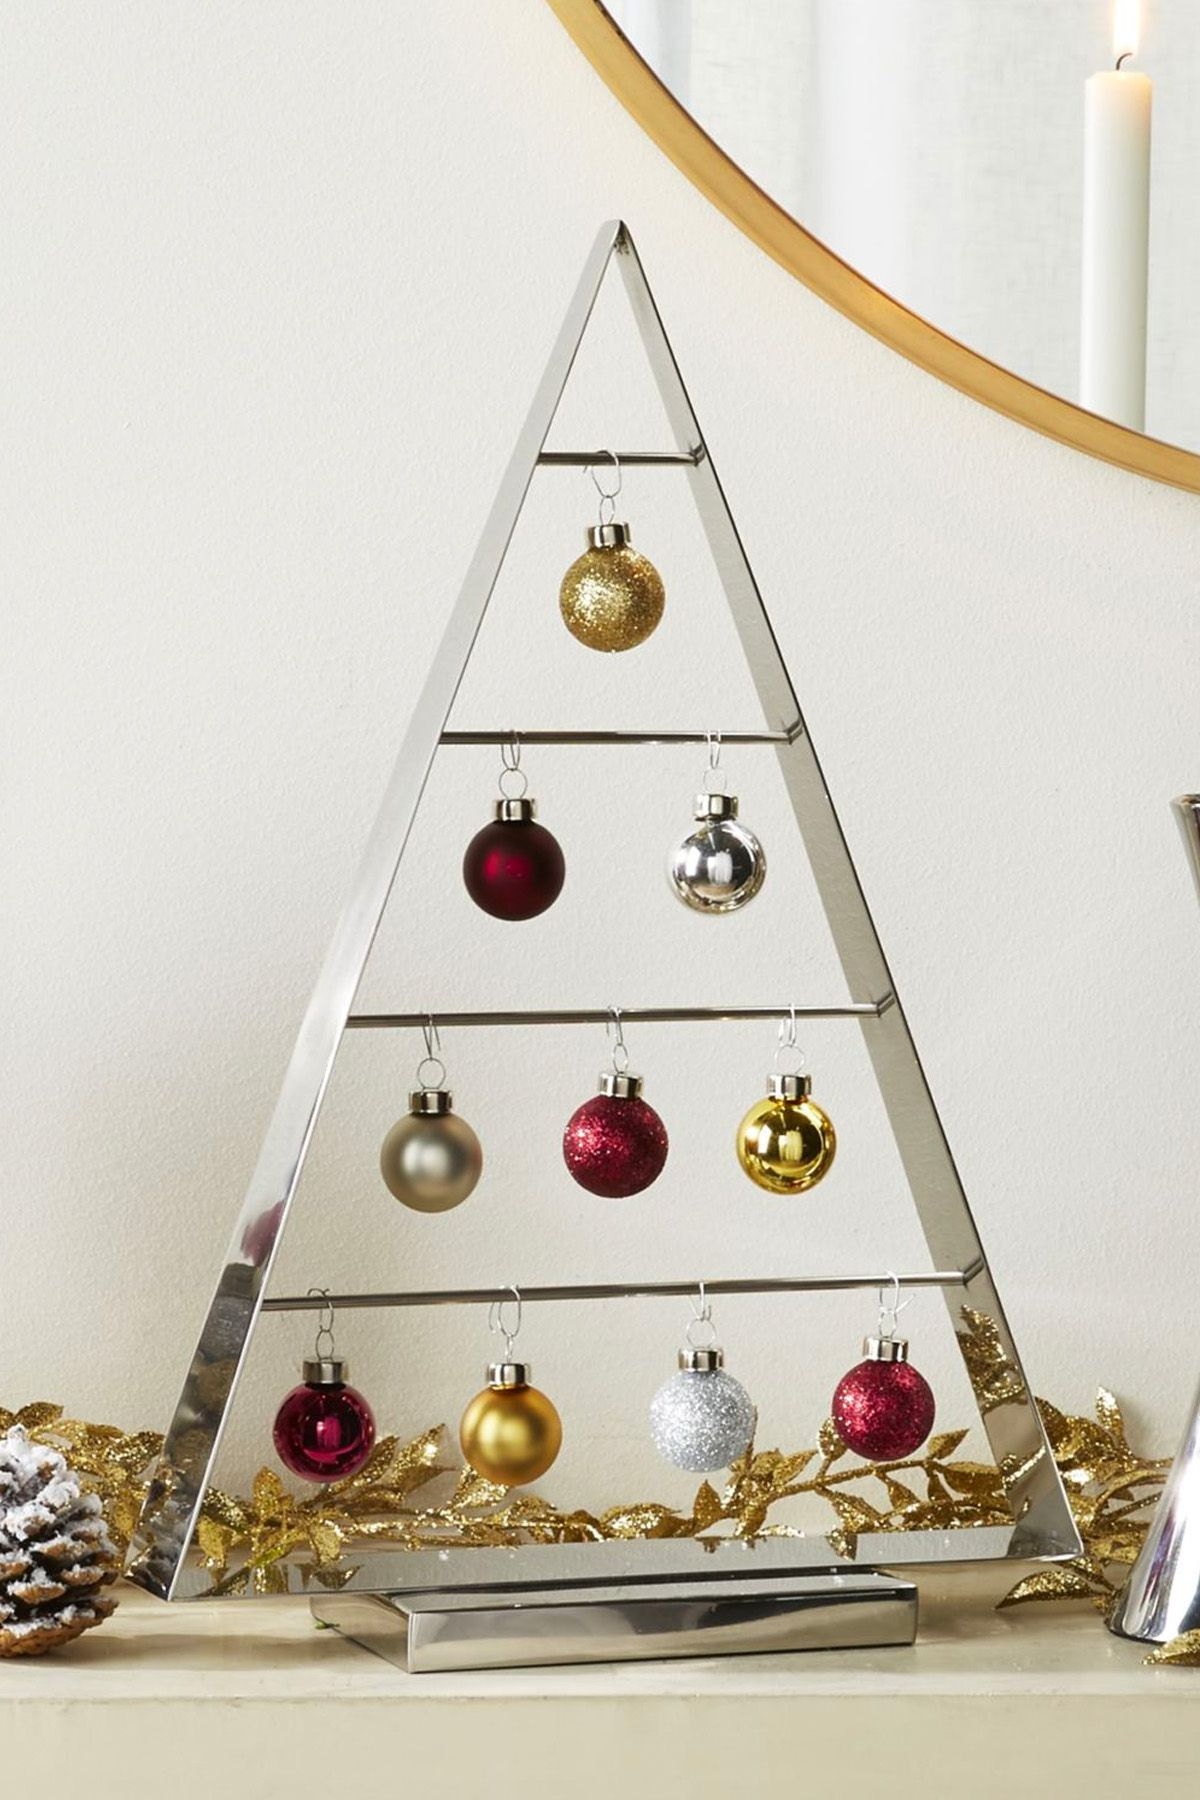 55 Easy DIY Christmas Decorations - Homemade Ideas for Holiday Decorating